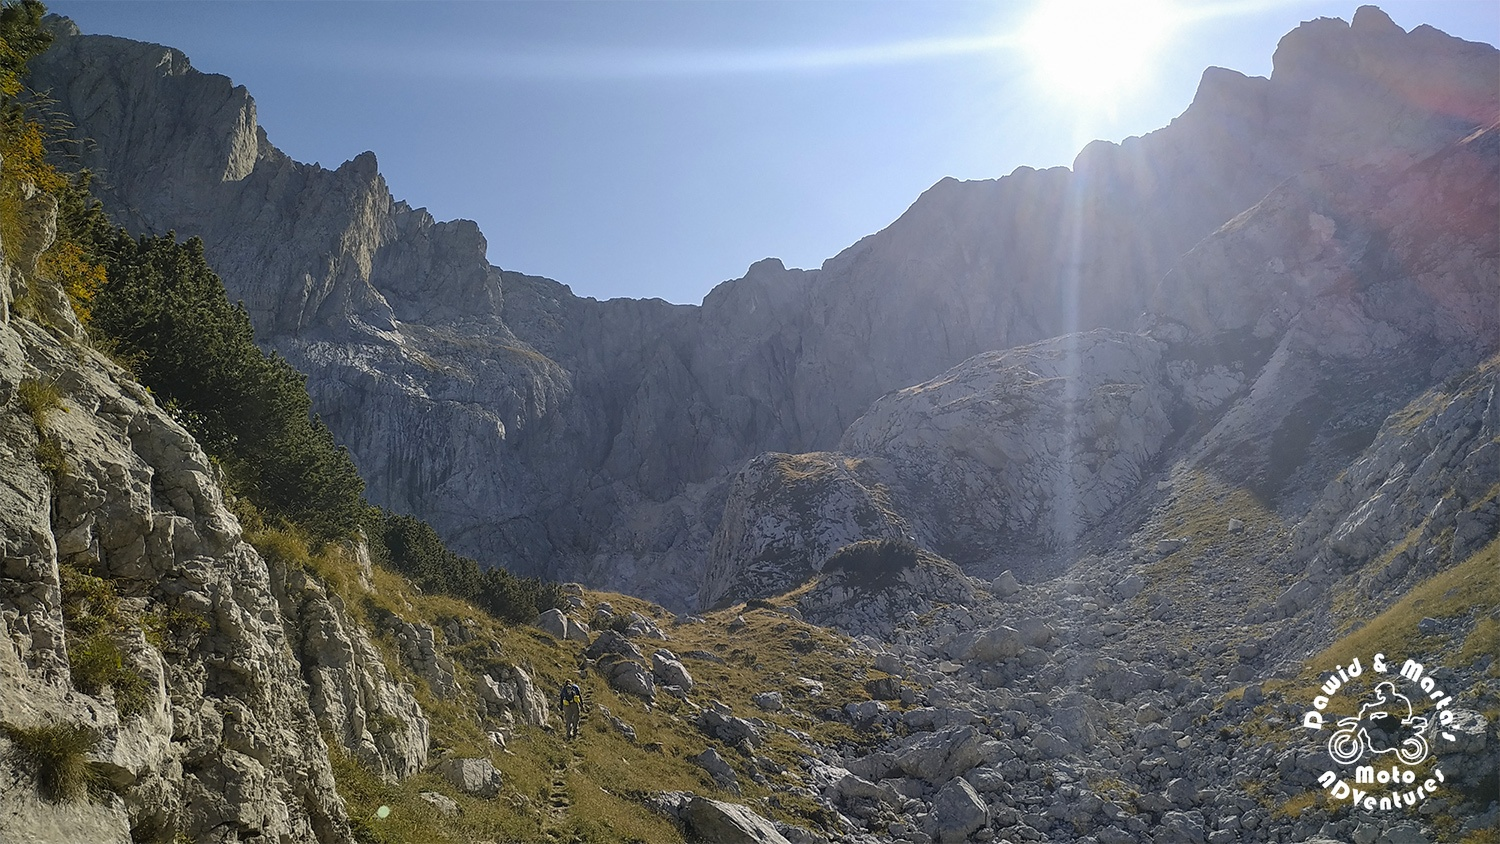 Hiking to shelter in Velika Kalica valley